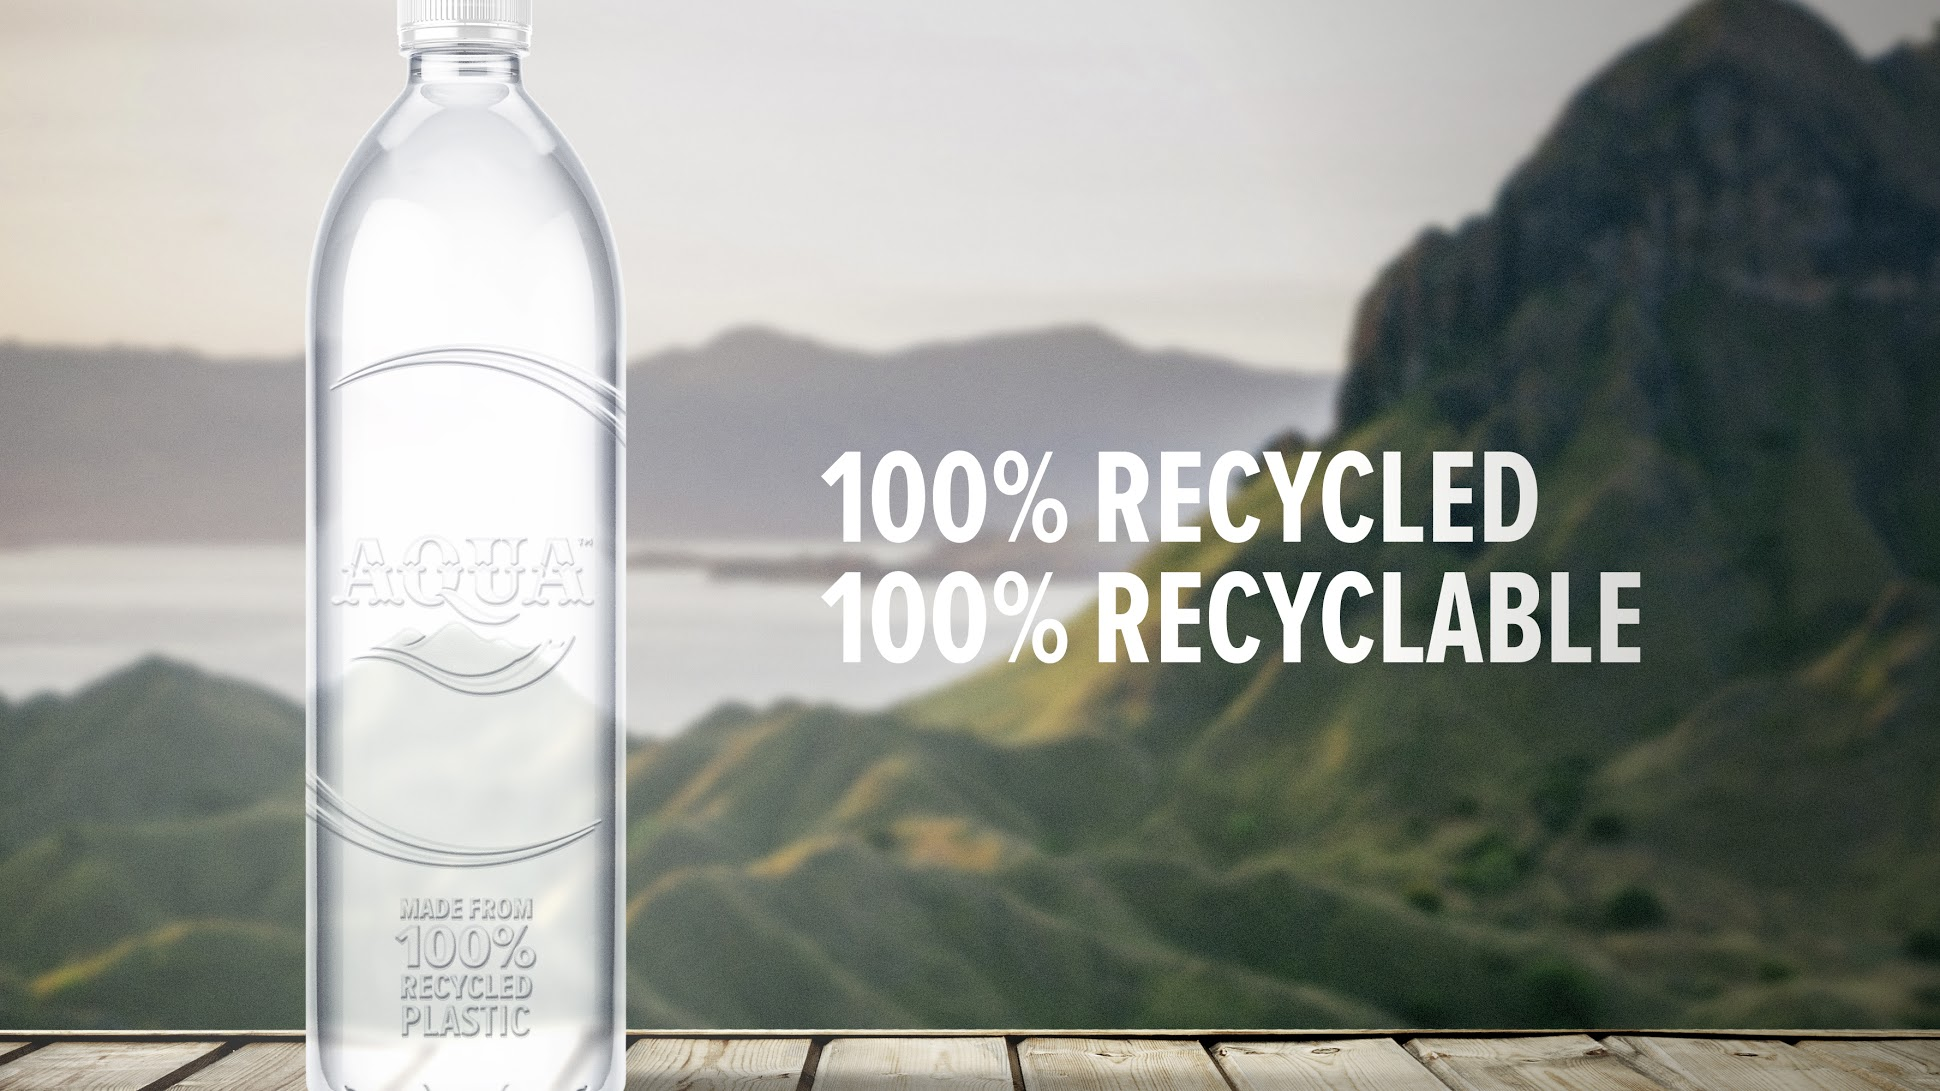 AQUA Indonesia. Asian Water Giant Launches 100% Recycled Plastic Edition.